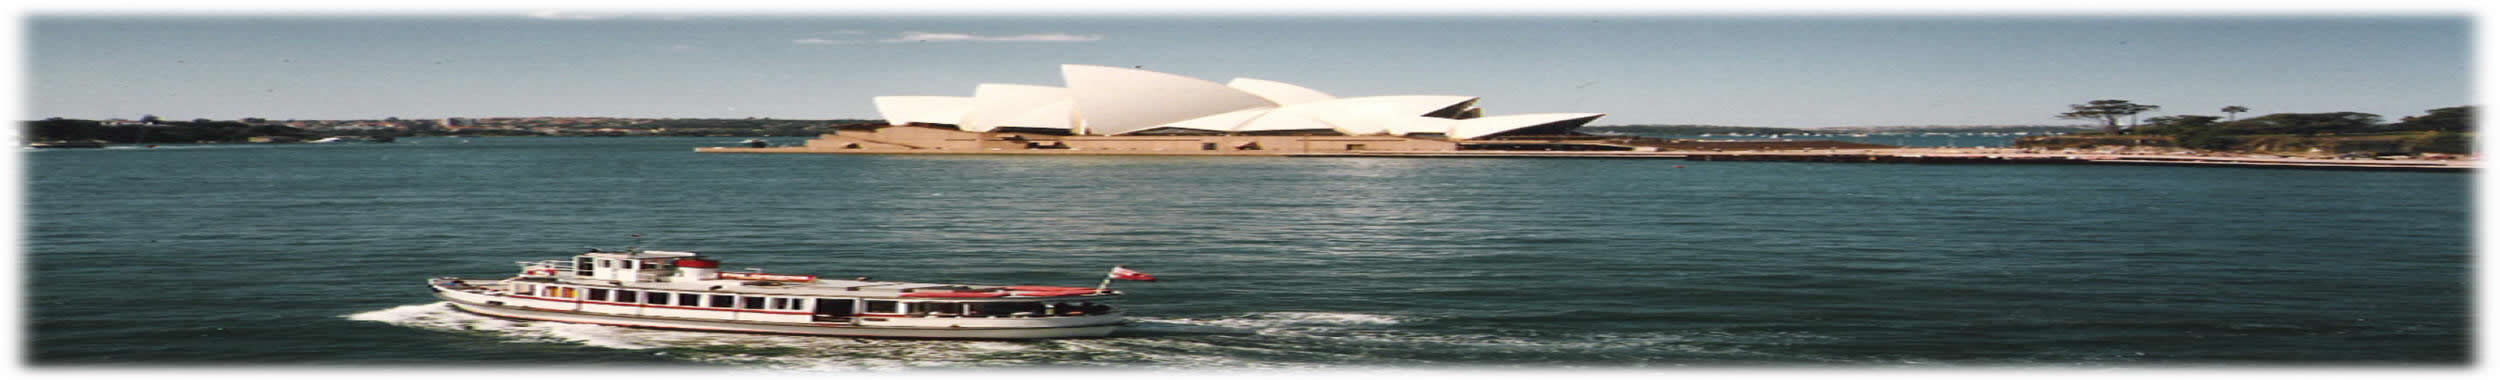 Sydney Opera House. Sydney Harbour. Sydney. Australia. Copy-Right InterConsult21.